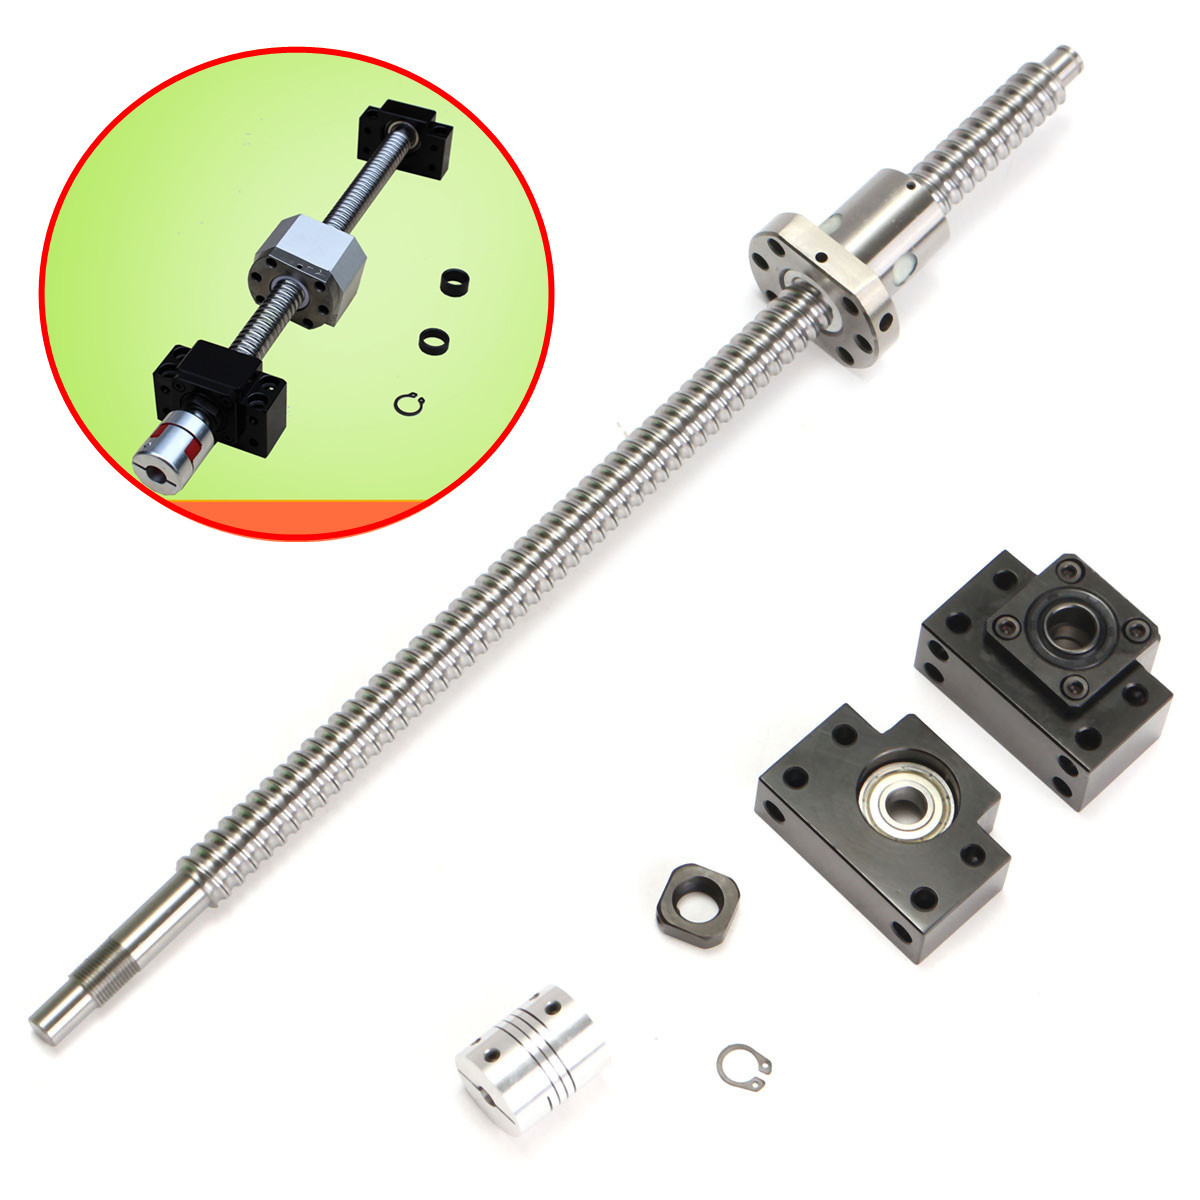 WOLIKE 400mm SFU1605 Ball Screw with BK12 BF12 Supports and 6.35x10mm Coupler for CNC Linear Guides